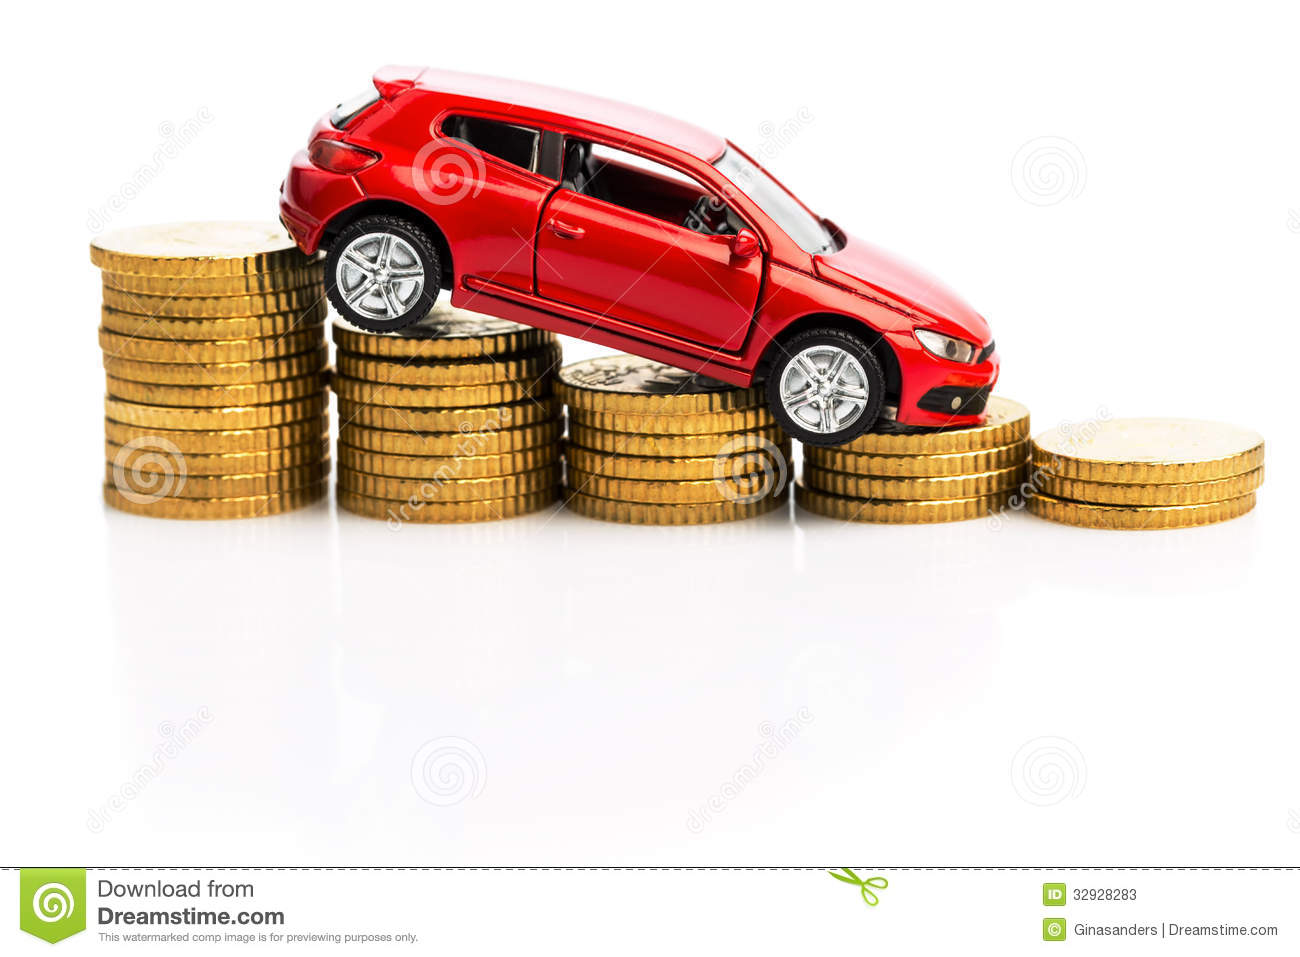 Declining profits in the motor trade